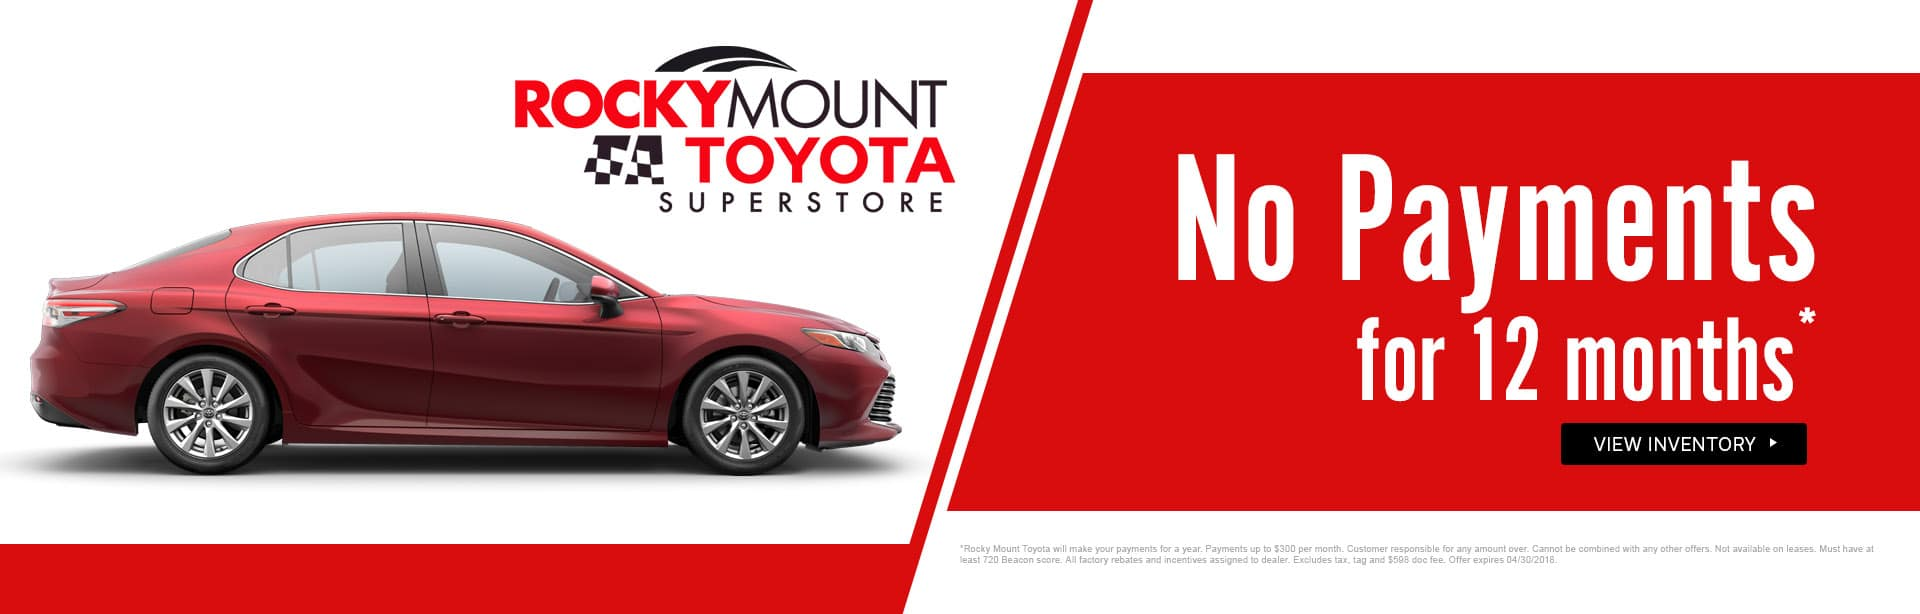 Make no payments for 12 months here at Rocky Mount Toyota in Rocky Mount NC